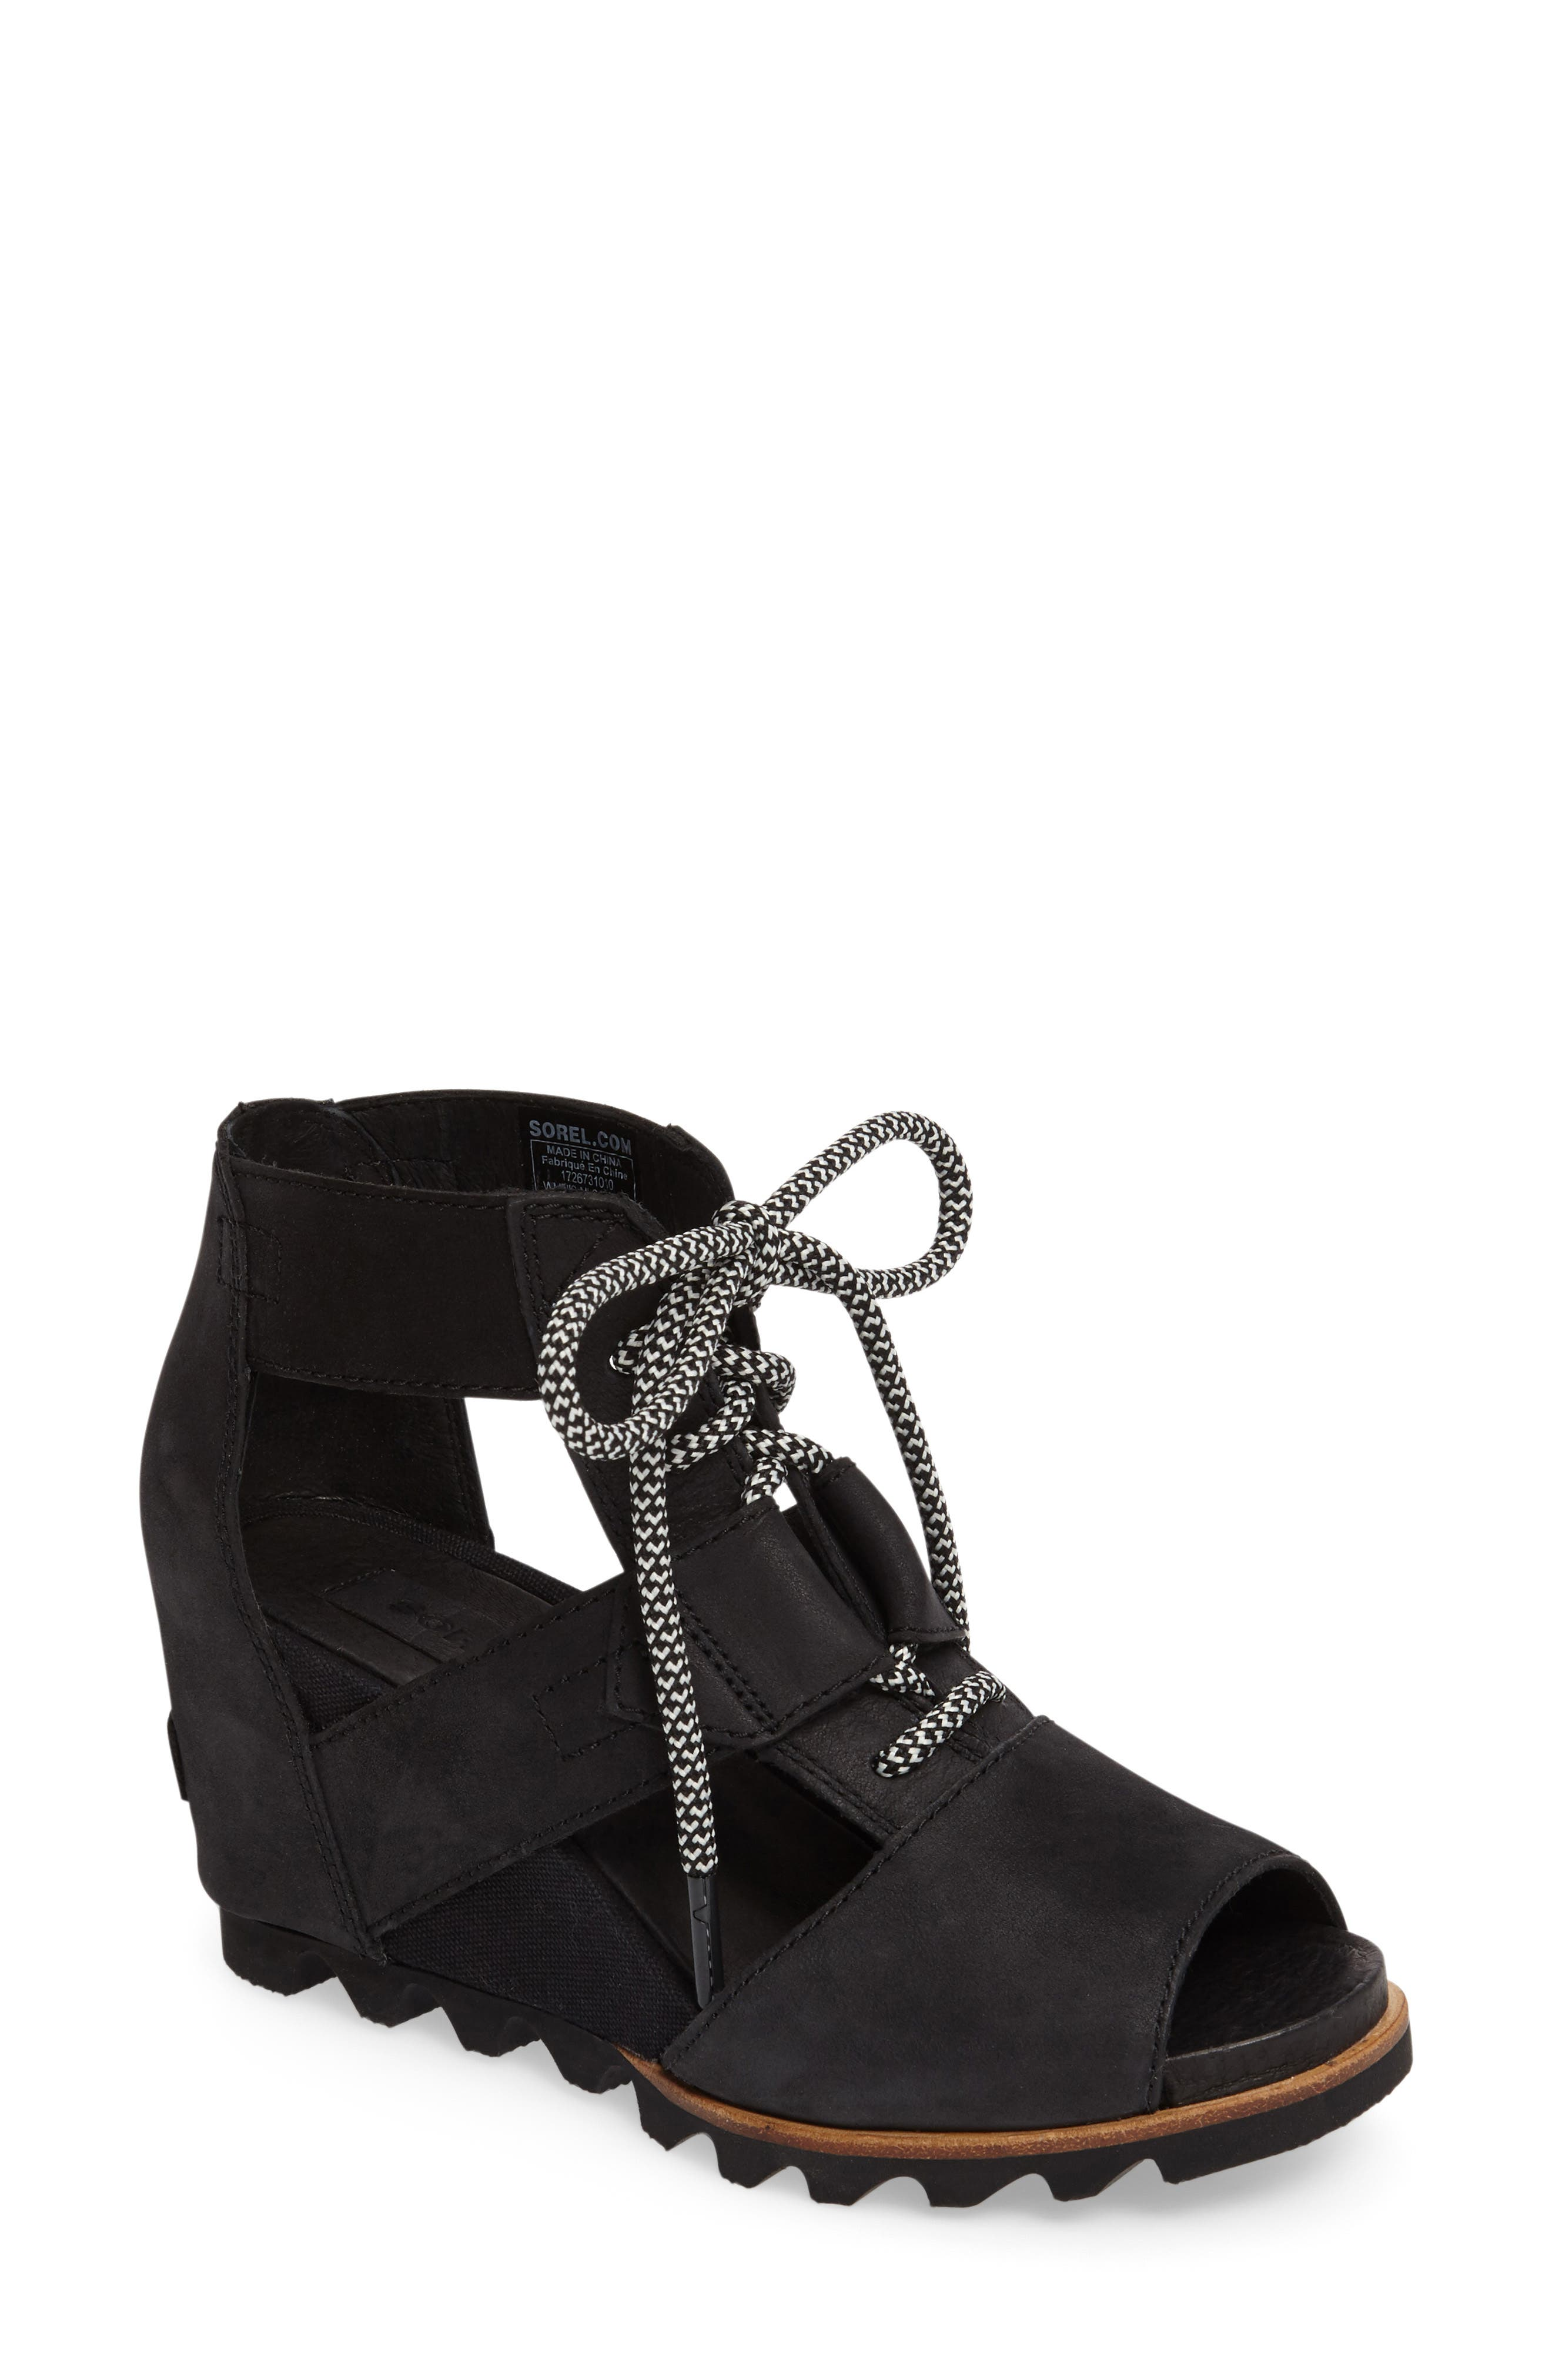 'Joanie' Cage Sandal,                             Main thumbnail 4, color,